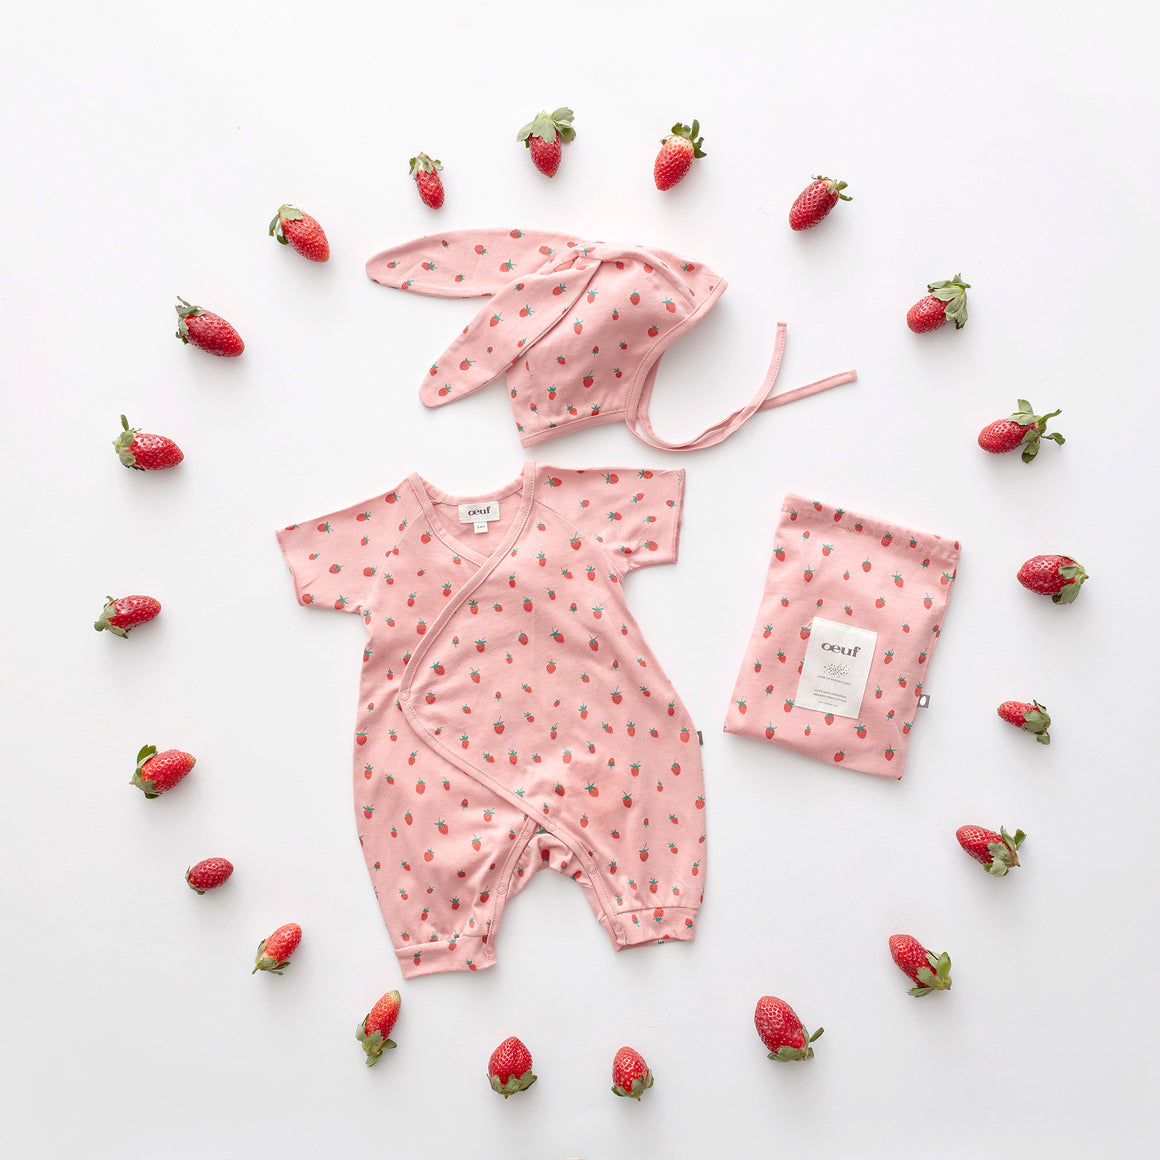 OEUF - Baby Bunny Set - Rose/Strawberries